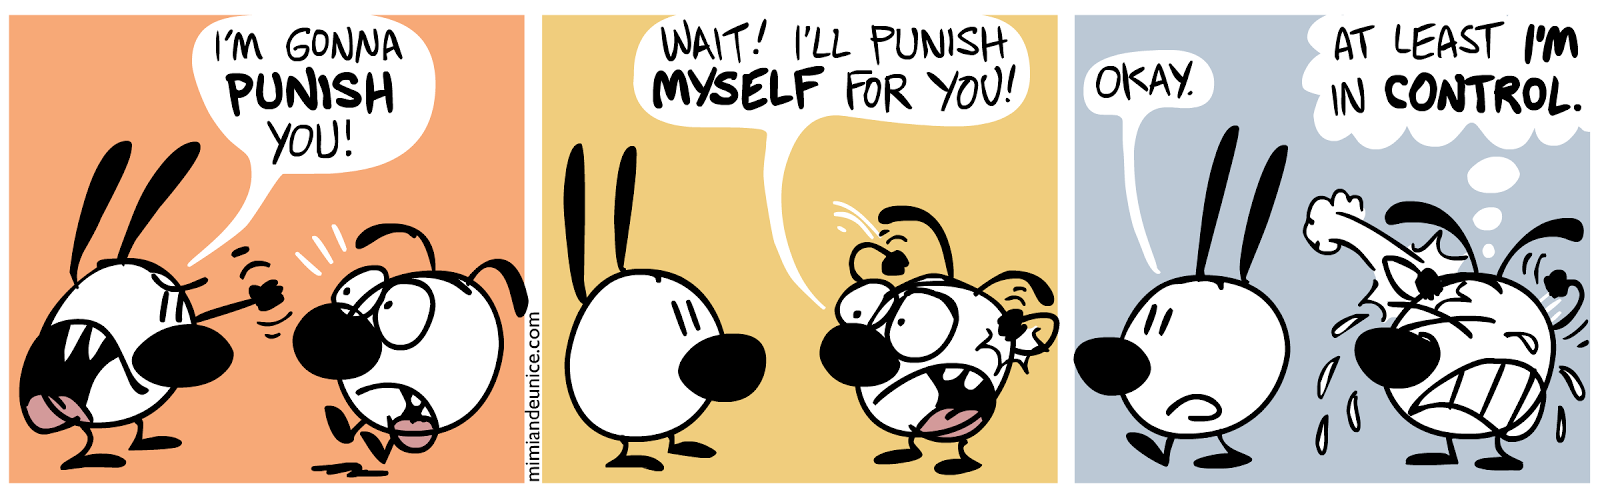 Mimi And Eunice Self-Punishment comic